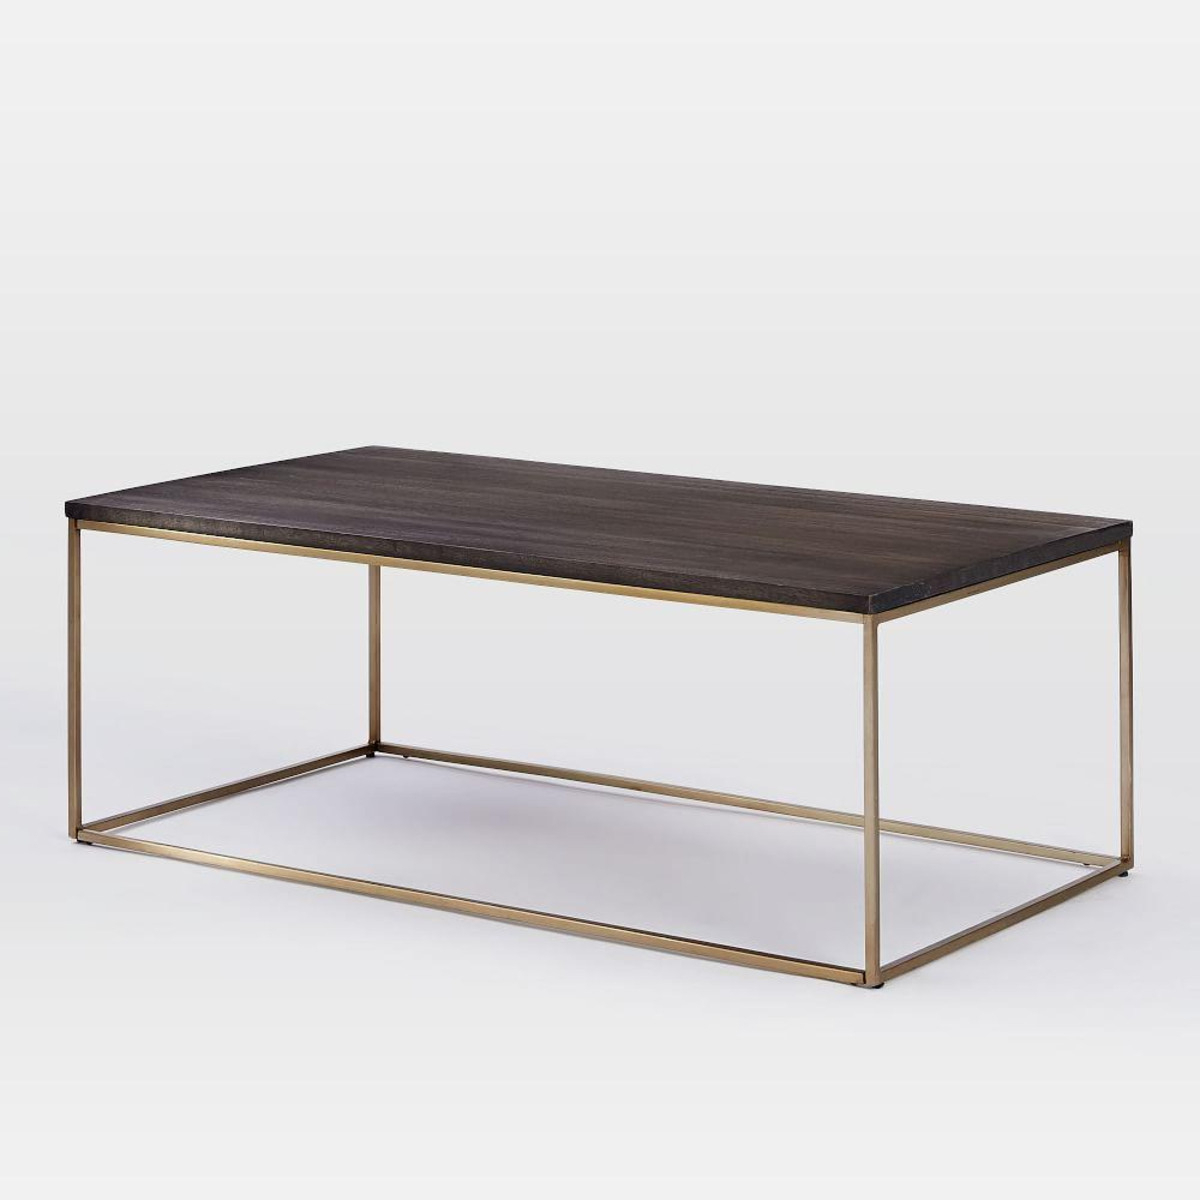 Preferred Brass Coffee Table With Glass Top Taroudant Industrial Loft Hammered In Darbuka Brass Coffee Tables (View 13 of 20)